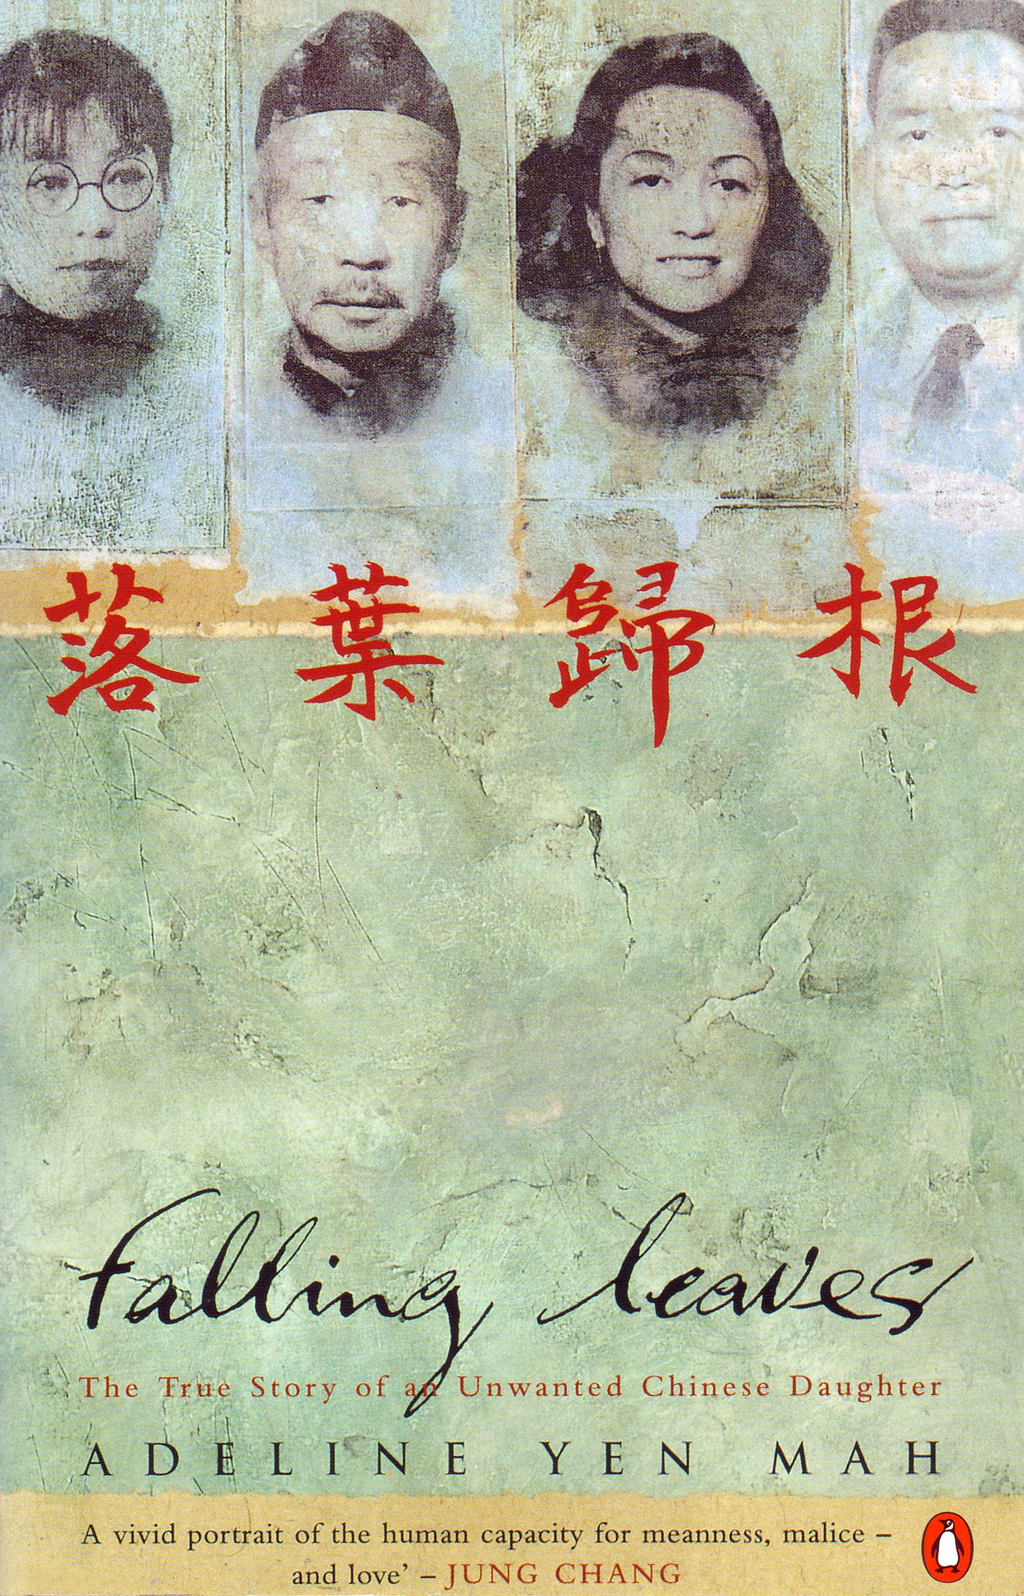 Falling Leaves Return to Their Roots The True Story of an Unwanted Chinese Daughter